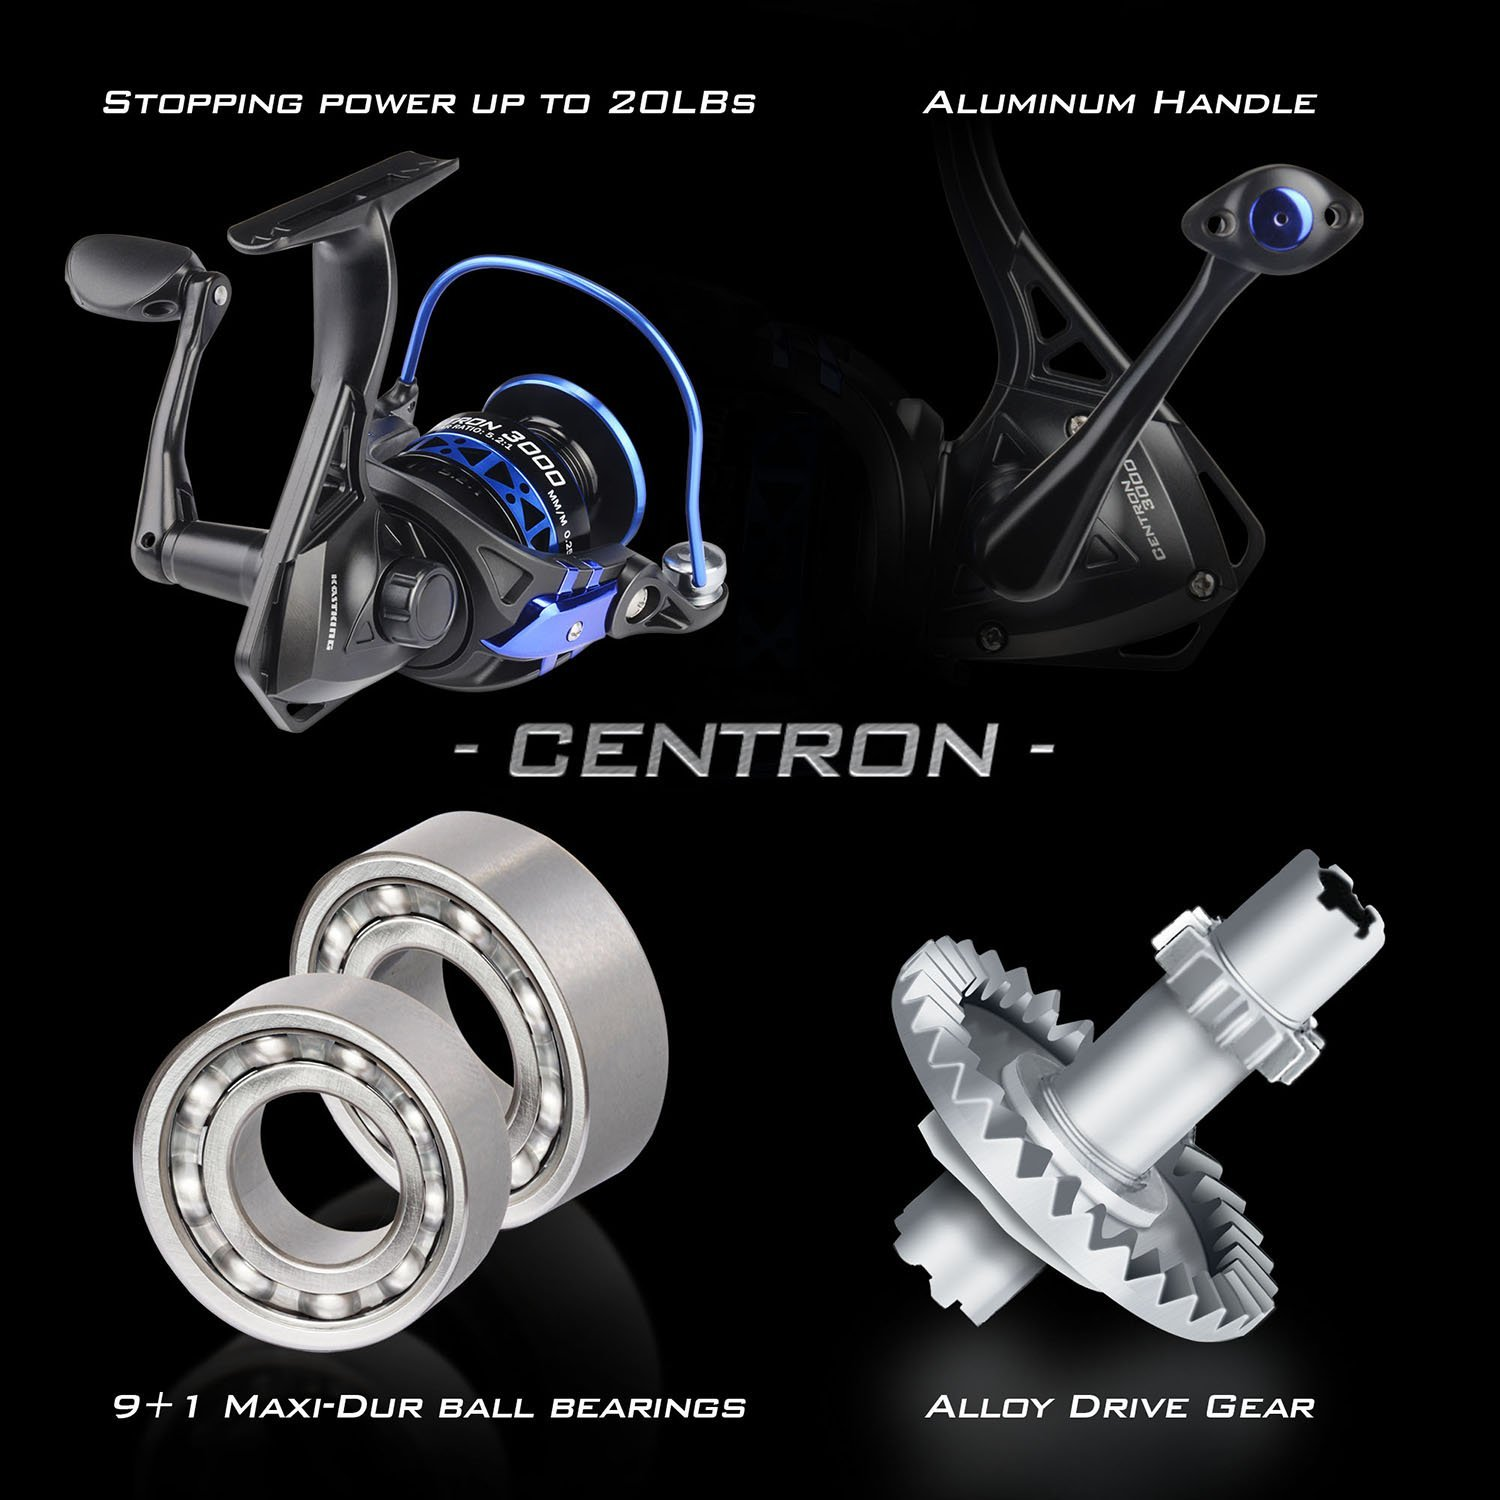 Fishing Rod Combos KastKing Centron Spinning Reel Stainless Steel Guides Toray IM6 Graphite 2Pc Blanks